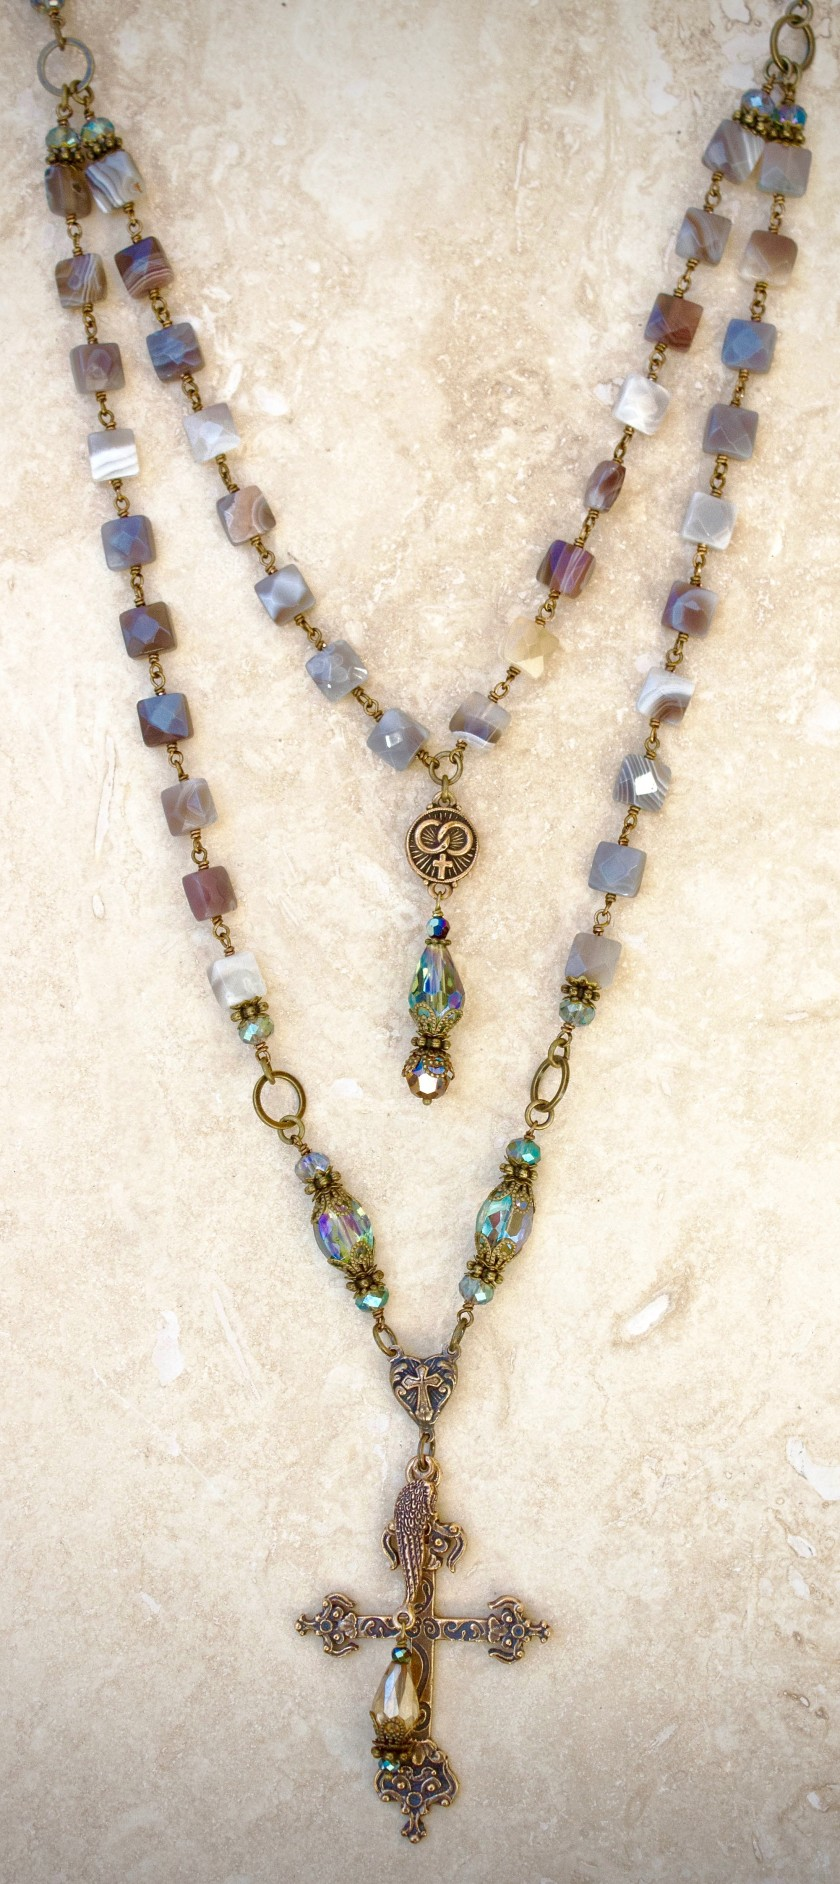 Natural Botswana Agates with Aqua Crystal Necklace – 10mm